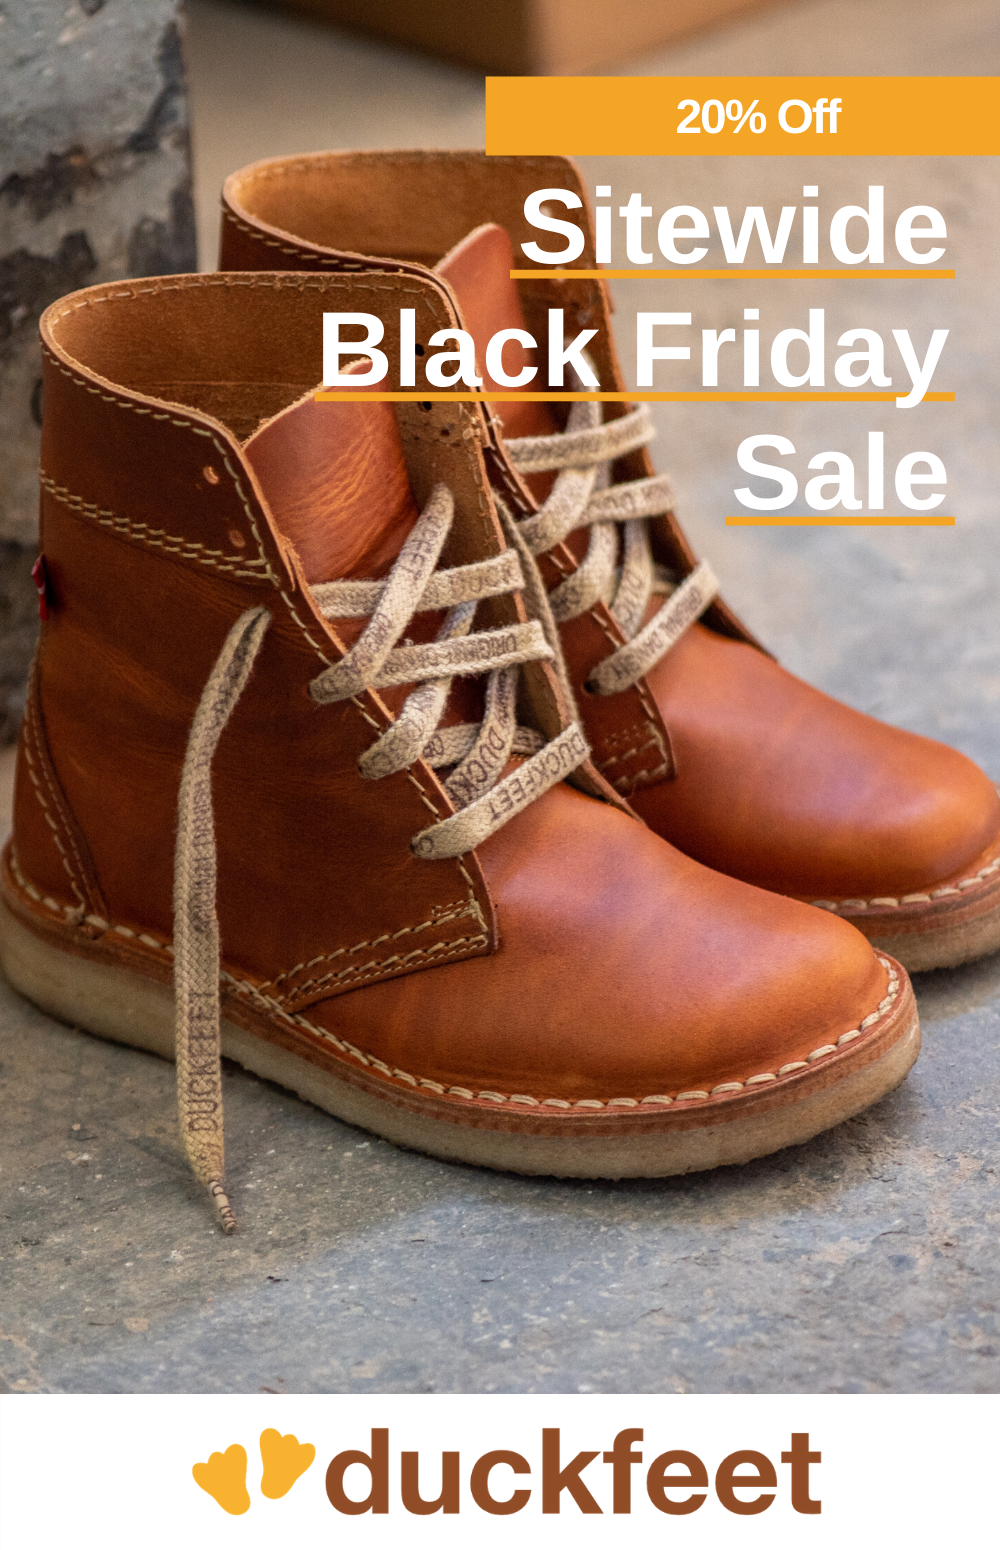 2020 Black Friday Shoes & Boots Sale